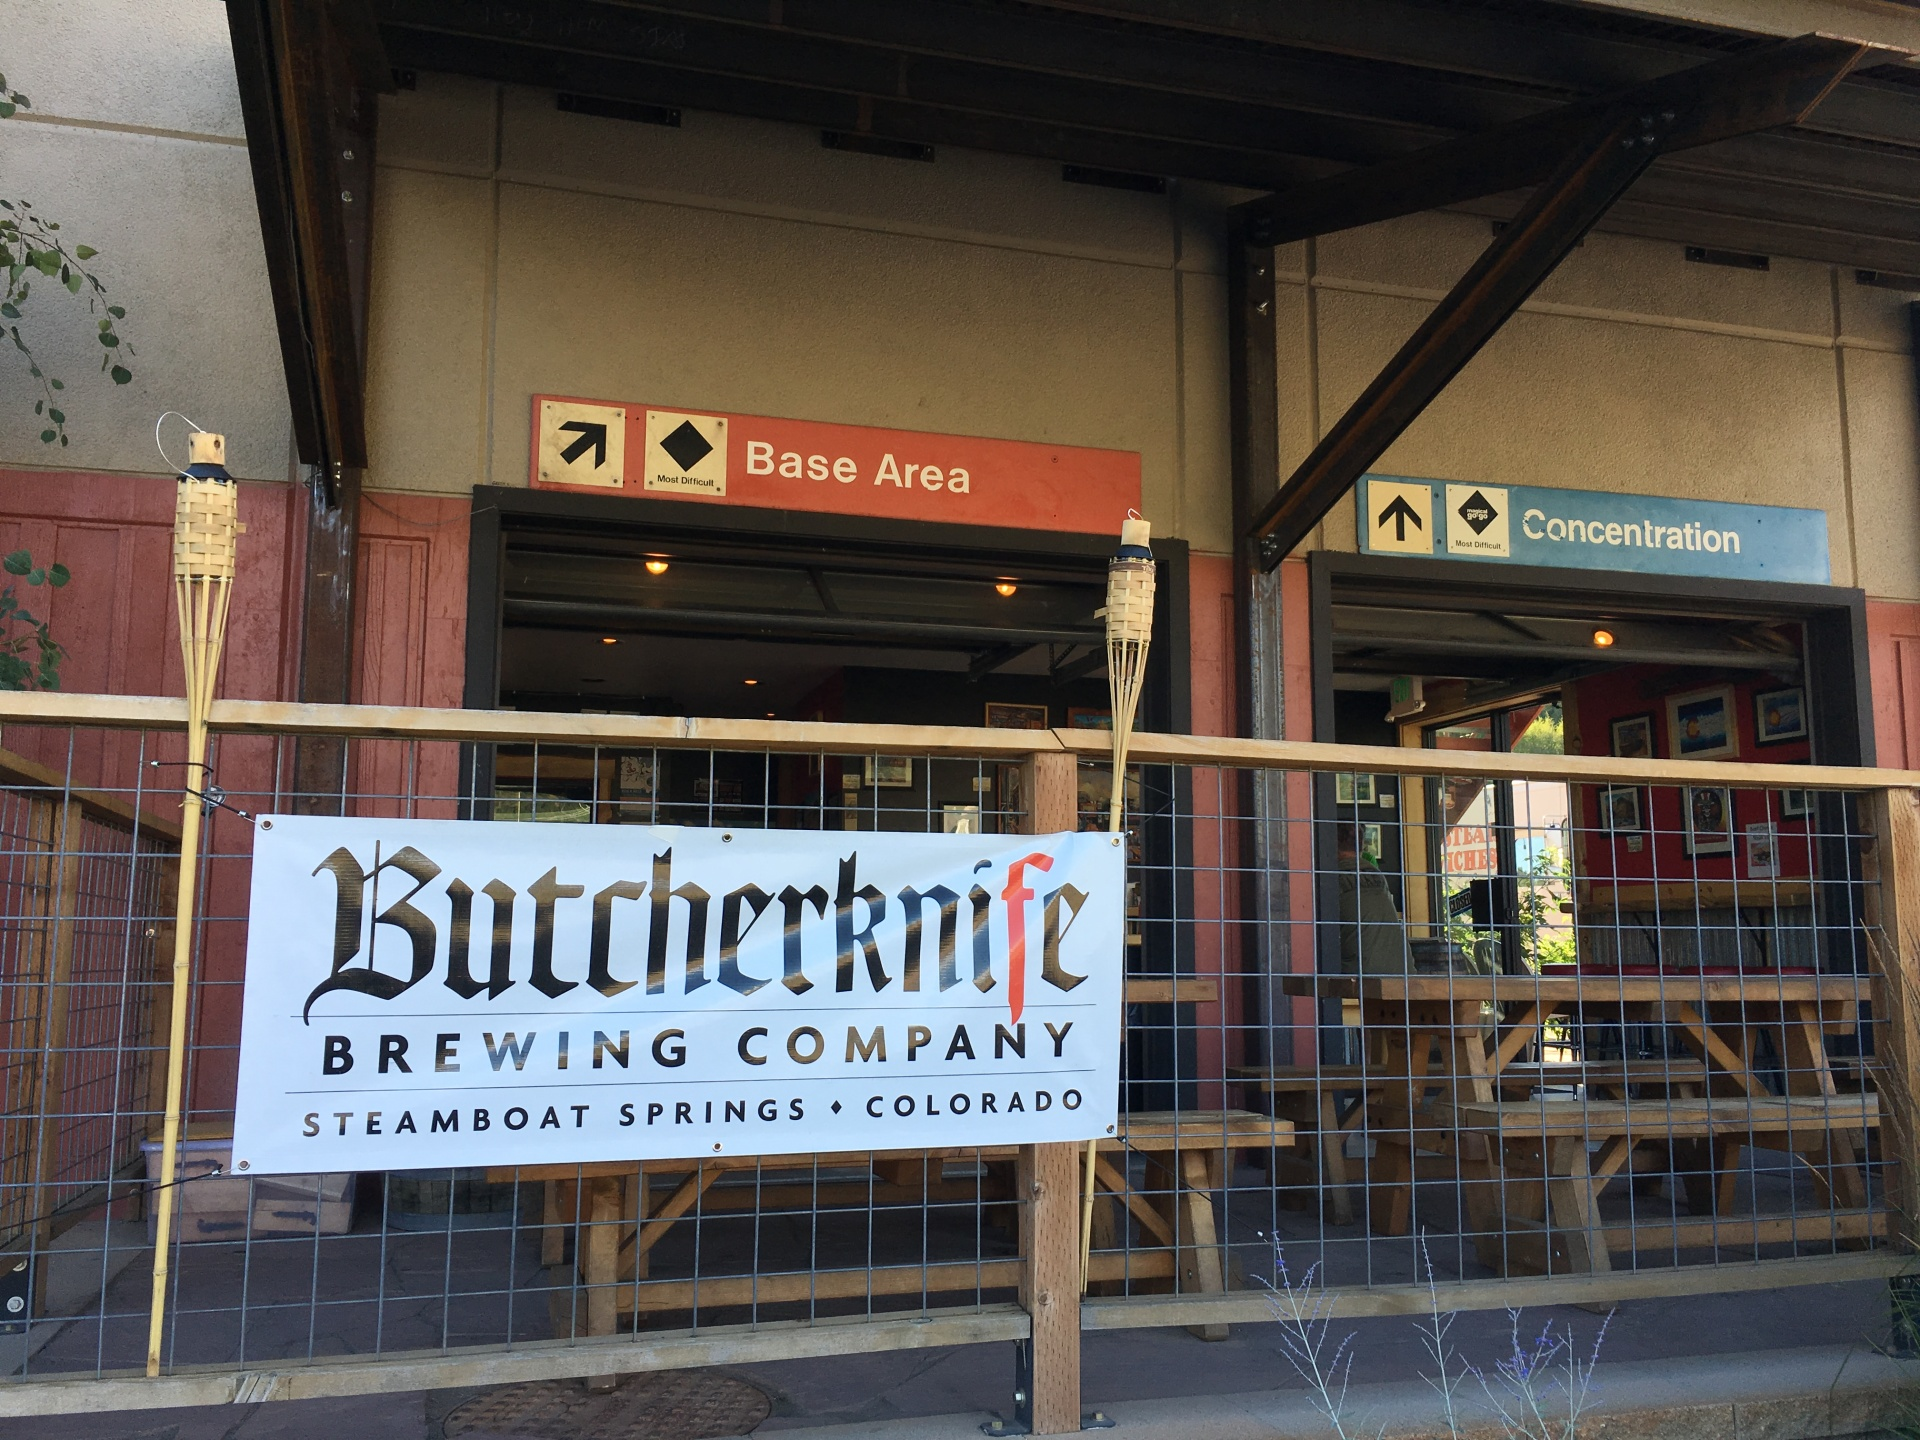 Butcher Knife Brewing Company